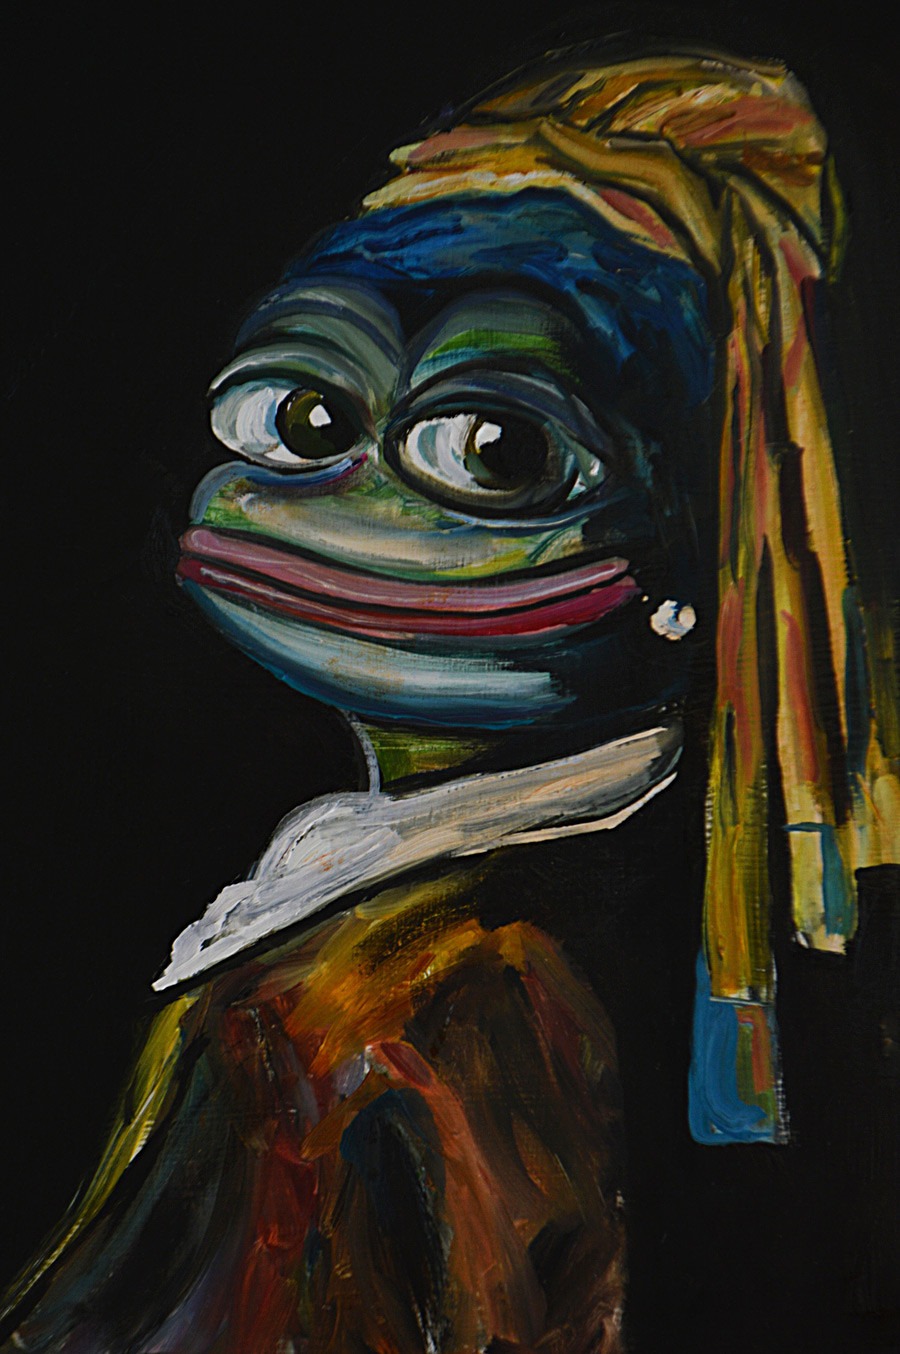 Pepe with a Pearl Earring (based on Girl with a Pearl Earring by Jan Vermeer).